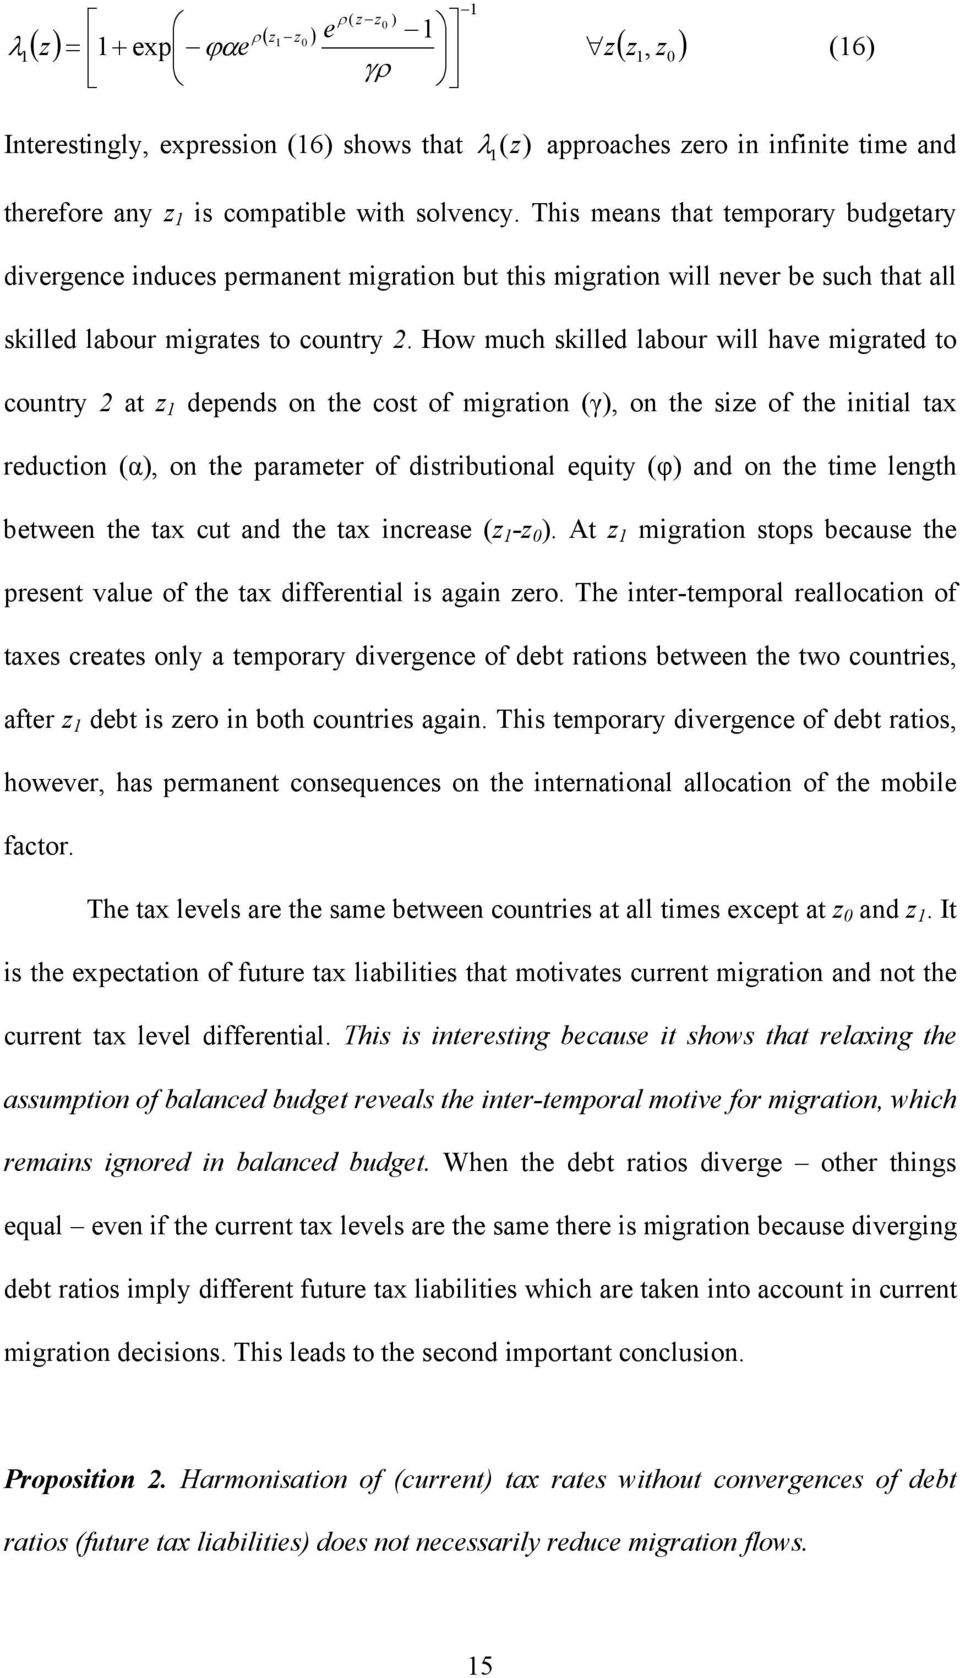 How much skilled labour will have migrated to country 2 at z depends on the cost of migration (γ), on the size of the initial tax reduction (α), on the parameter of distributional equity (φ) and on